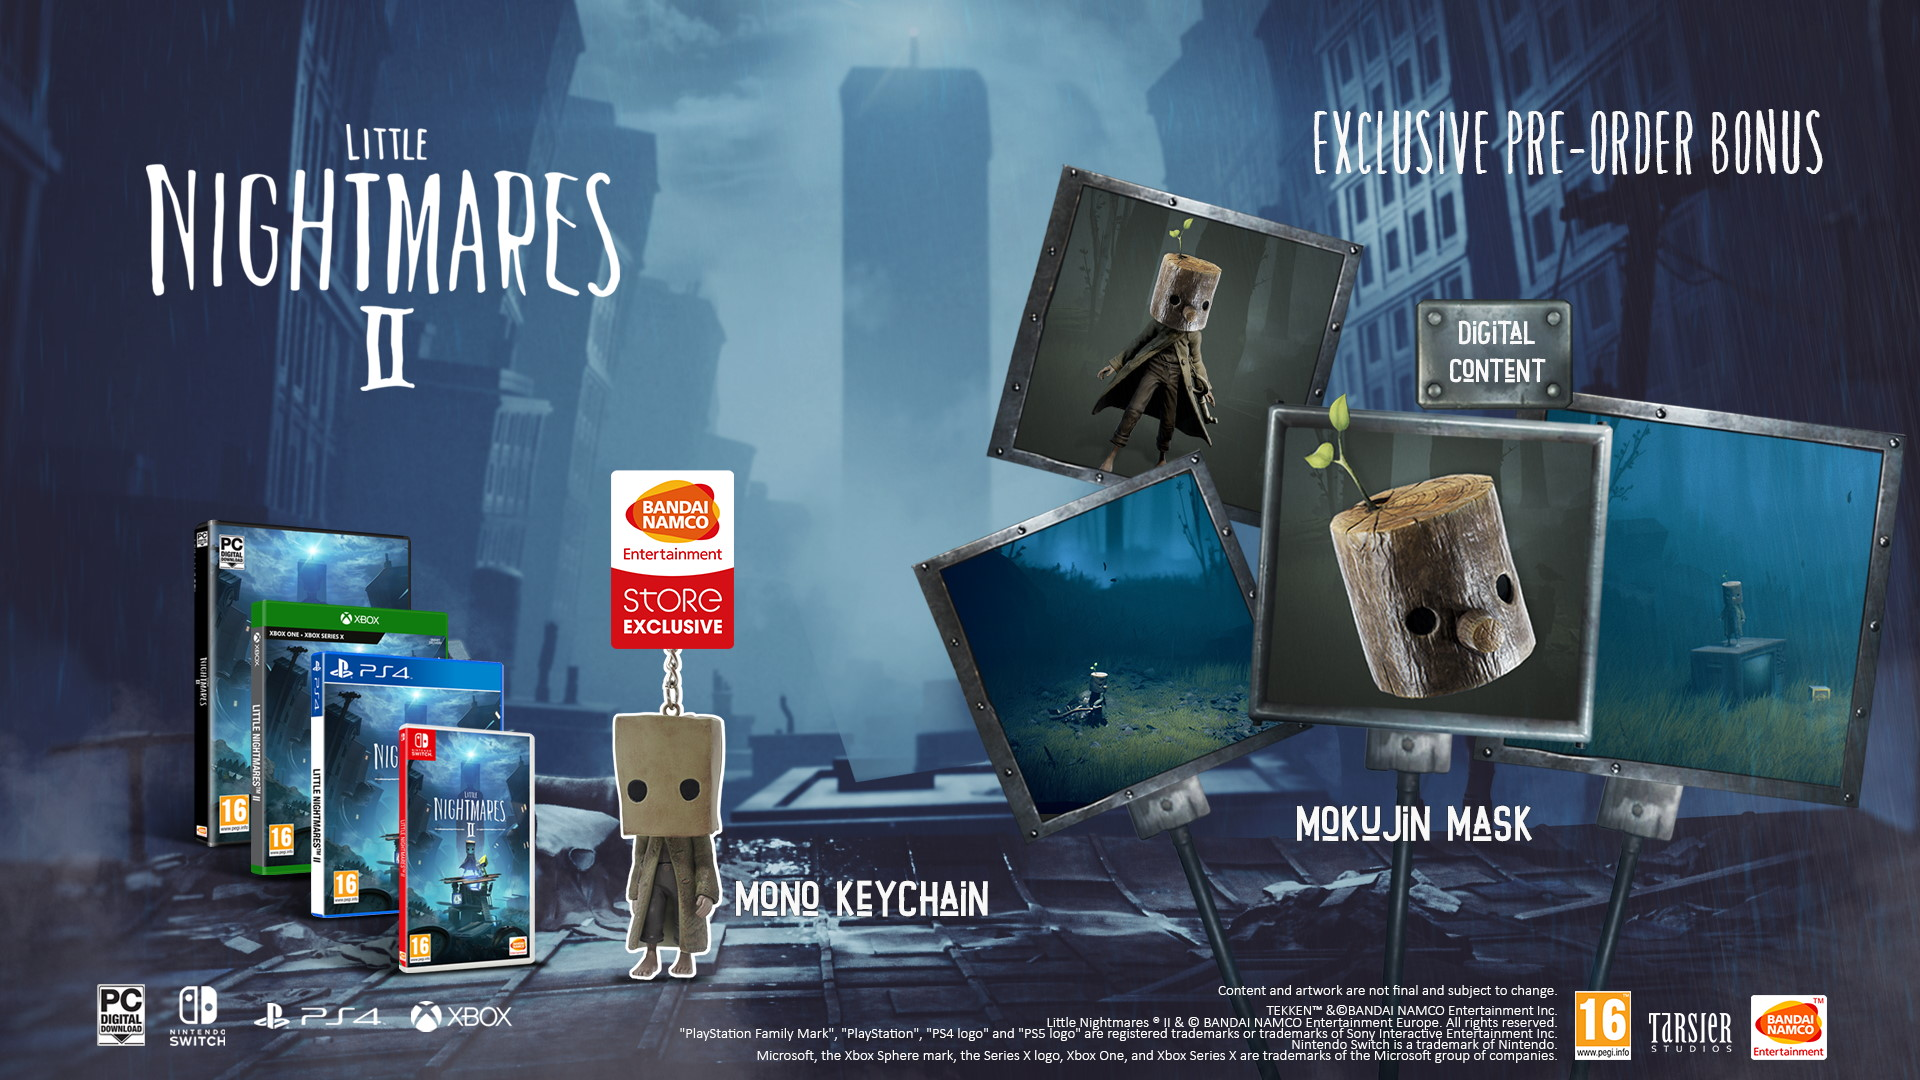 Little Nightmares II Pre-Order Bonus